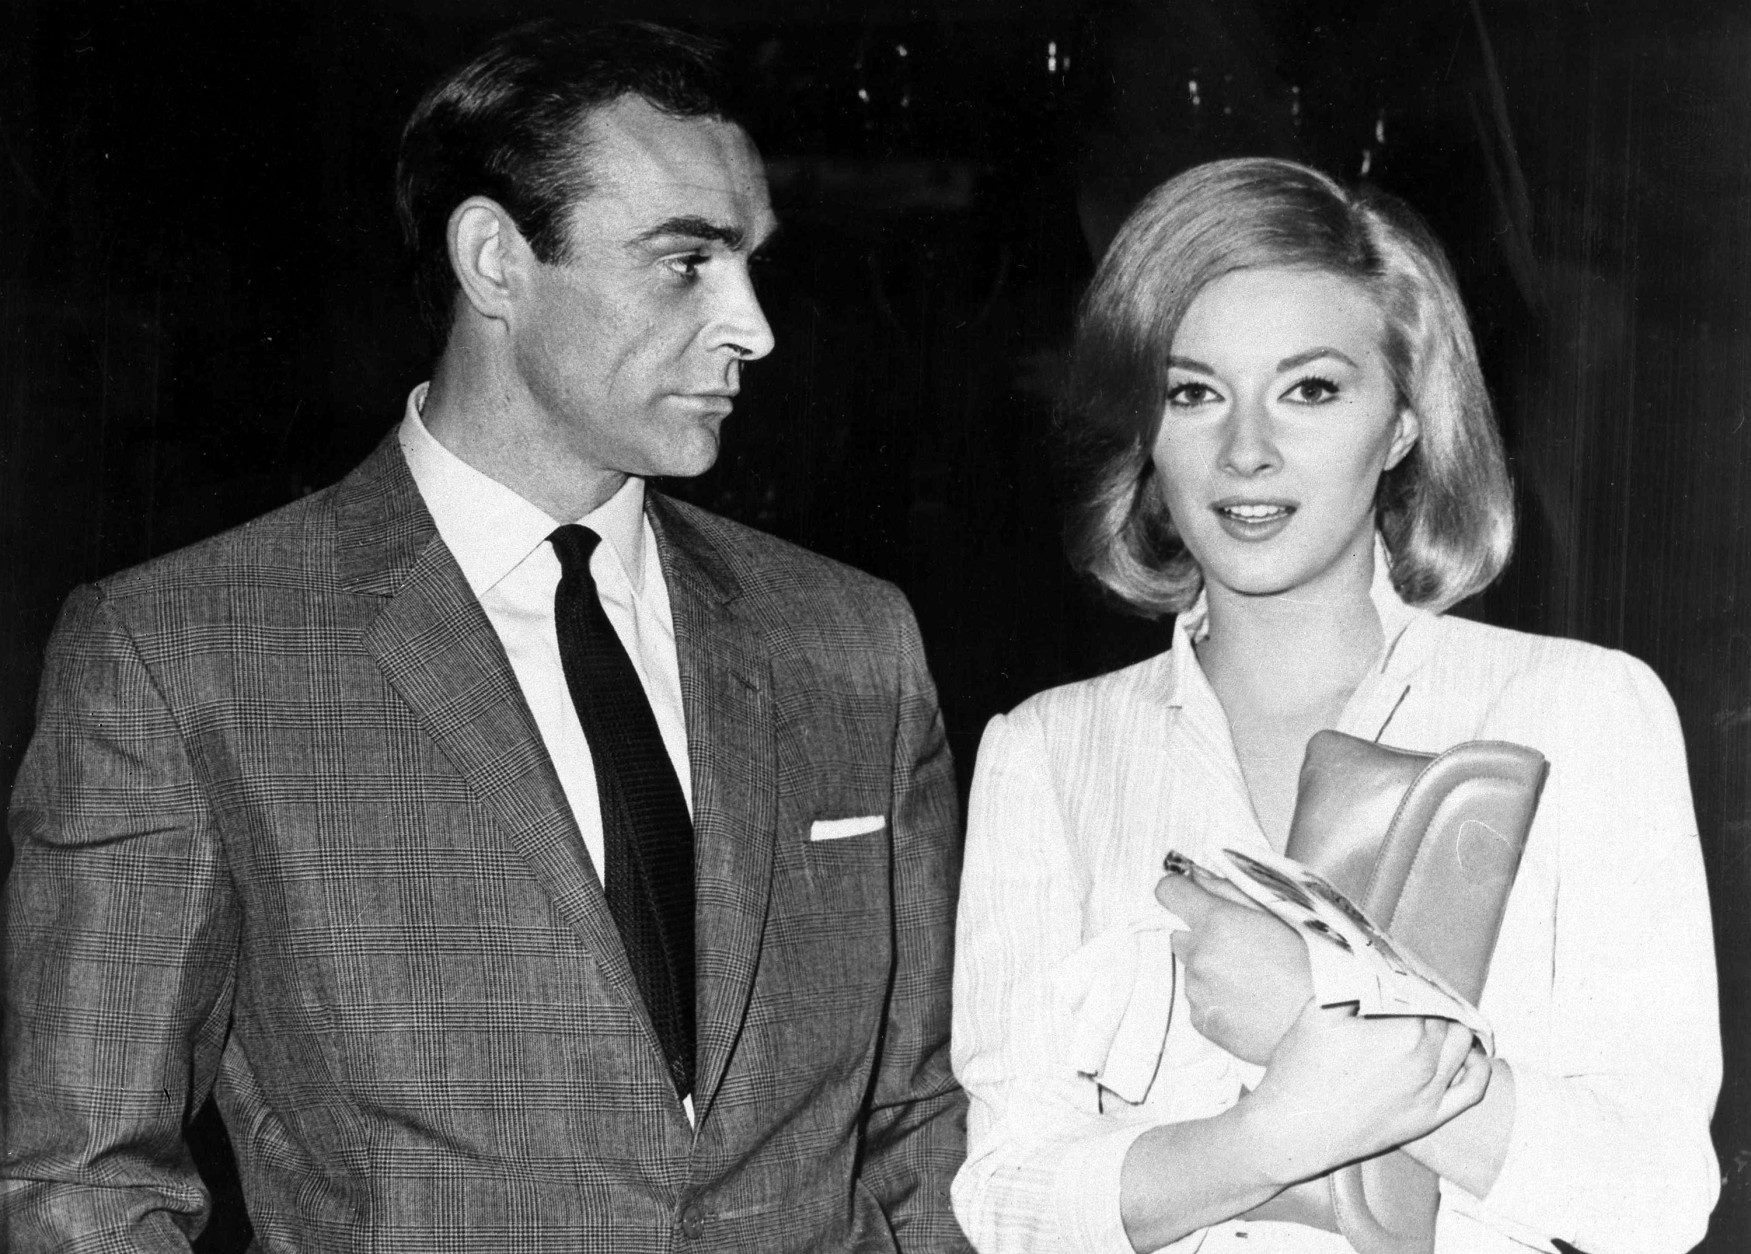 "File - In this Apr. 25, 1963 file photo, Sean Connery and Italian actress Daniela Bianchi are seen in Istanbul, Turkey. The pair were in the country filming the second Bond film, 'From Russia with Love.' Connery was playing the British secret agent for the second time in what many critics consider to be one of the best Bond film of all. His suave but menacing Bond remains the standard for many Bond fans. The upcoming new Bond film ""Spectre"" starring Daniel Craig has its World Premiere on Monday Oct. 26, 2015, in London.(AP Photo, File)"